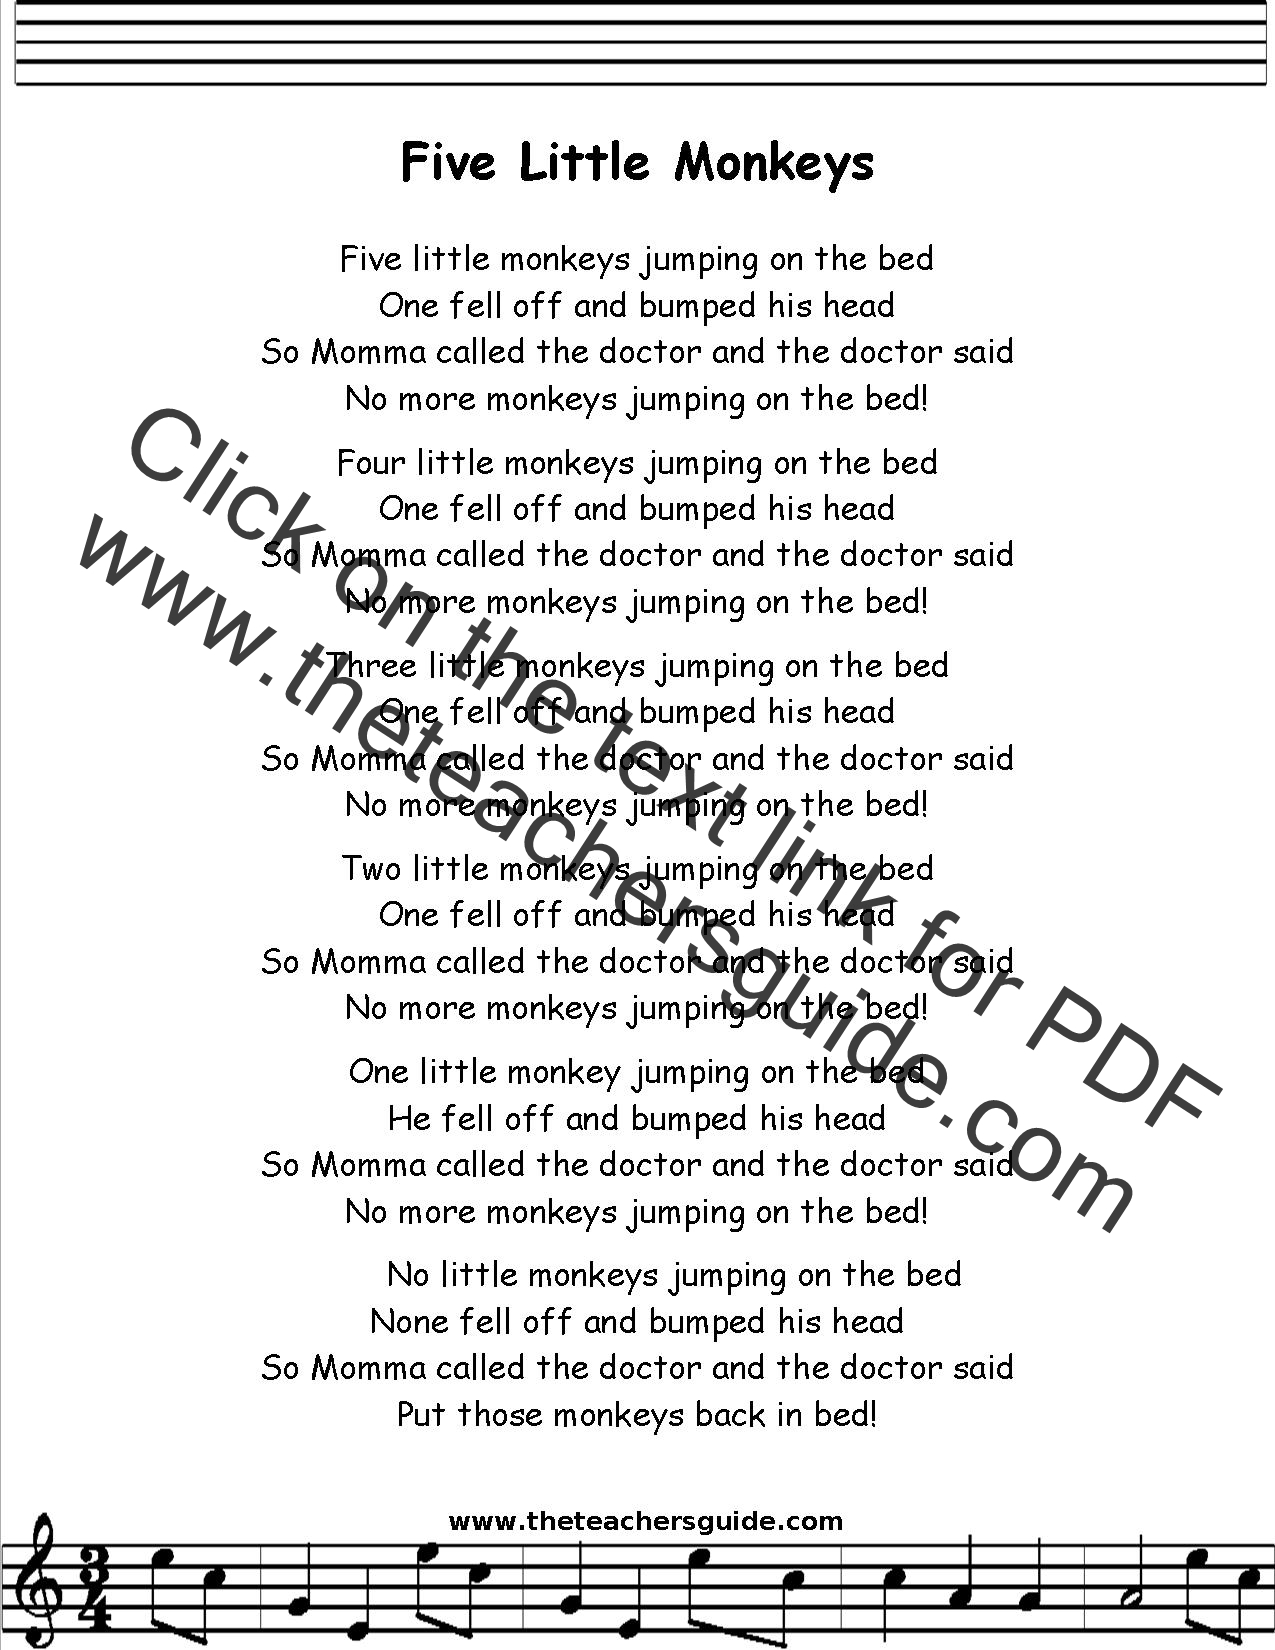 Five Little Monkeys Lyrics Printout Midi And Video